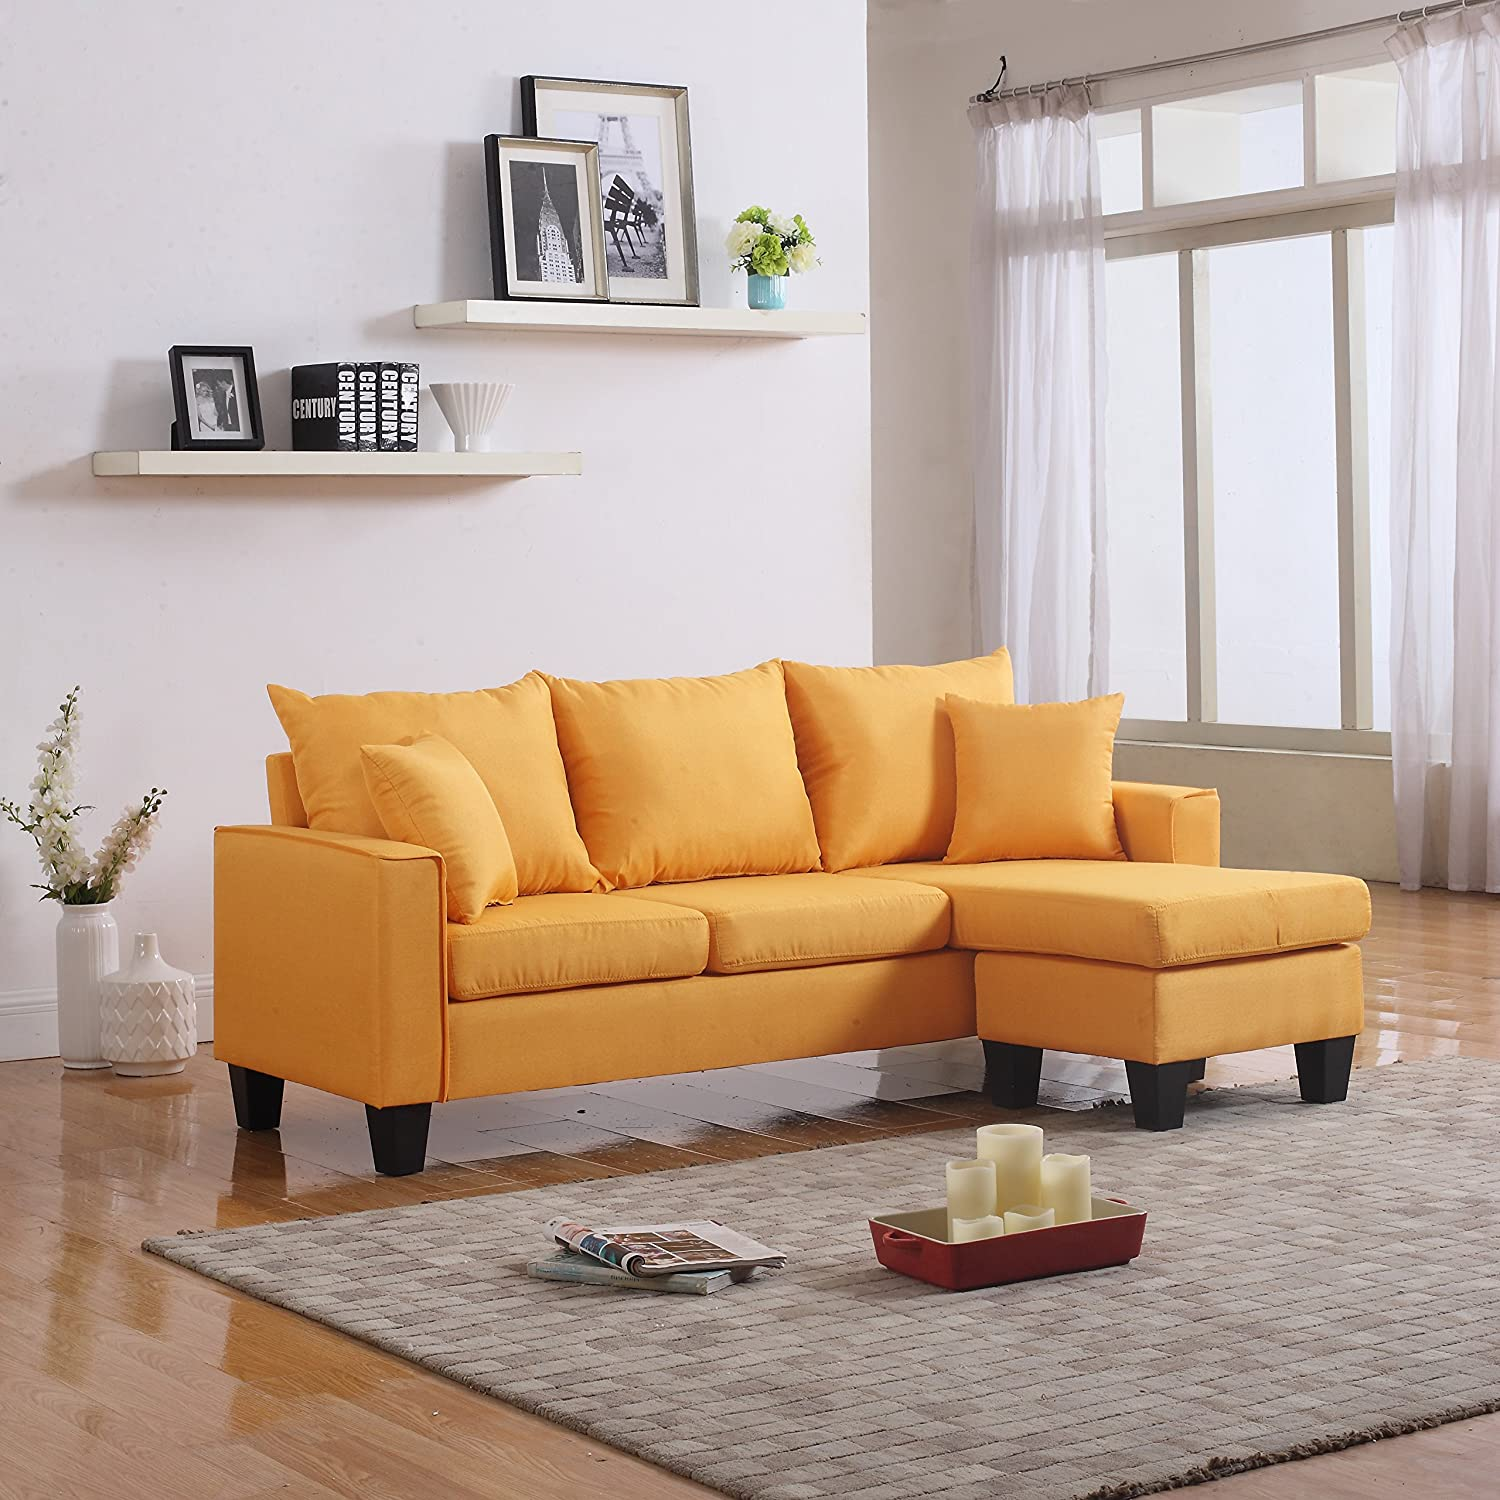 Design Small Space Sofas amazon com modern linen fabric small space sectional sofa with reversible chaise yellow kitchen dining